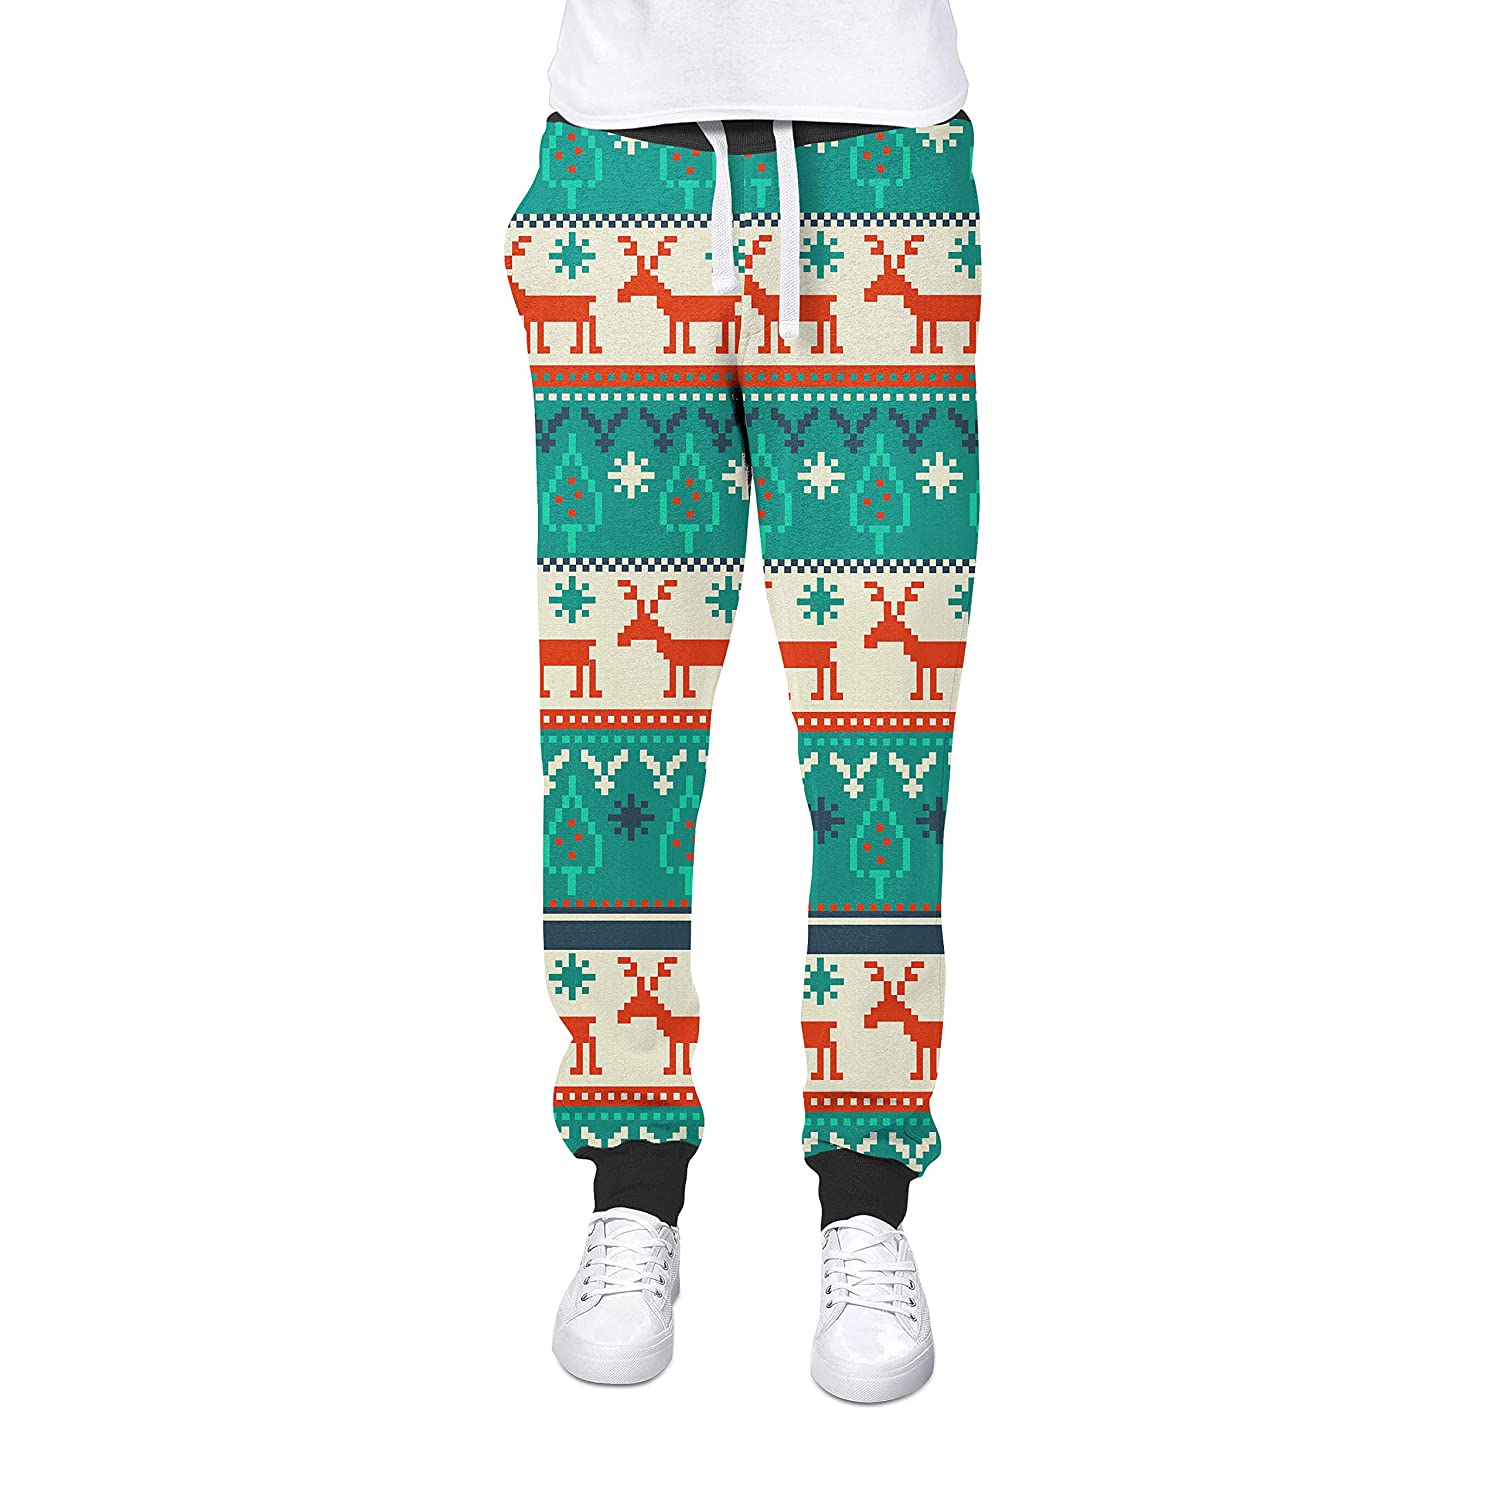 de62761545ca3 Queen of Cases Ugly Christmas Sweater Cuffed Joggers Sweatpants Jogging  Bottoms at Amazon Women's Clothing store: